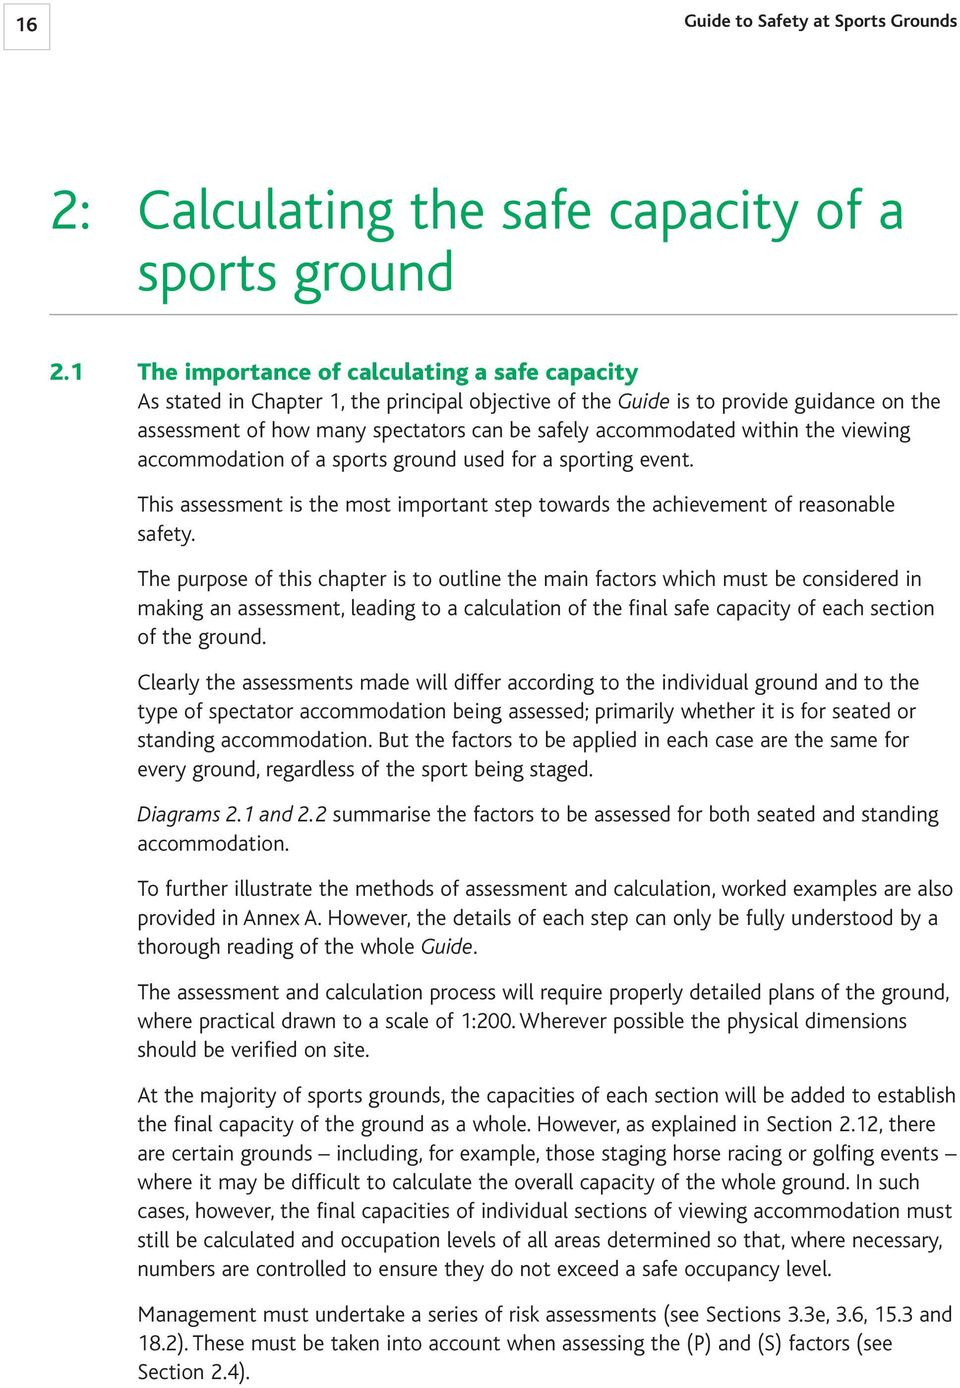 within the viewing accommodation of a sports ground used for a sporting event. This assessment is the most important step towards the achievement of reasonable safety.